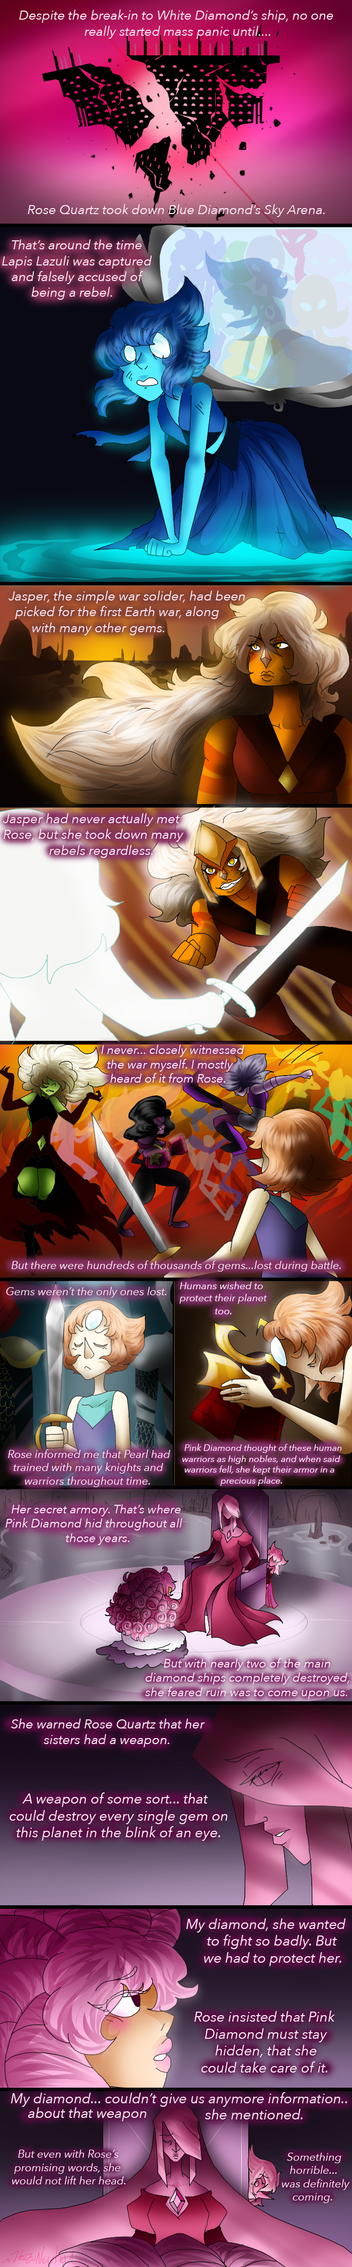 Pink Diamond's Tale p4 by HezuNeutral